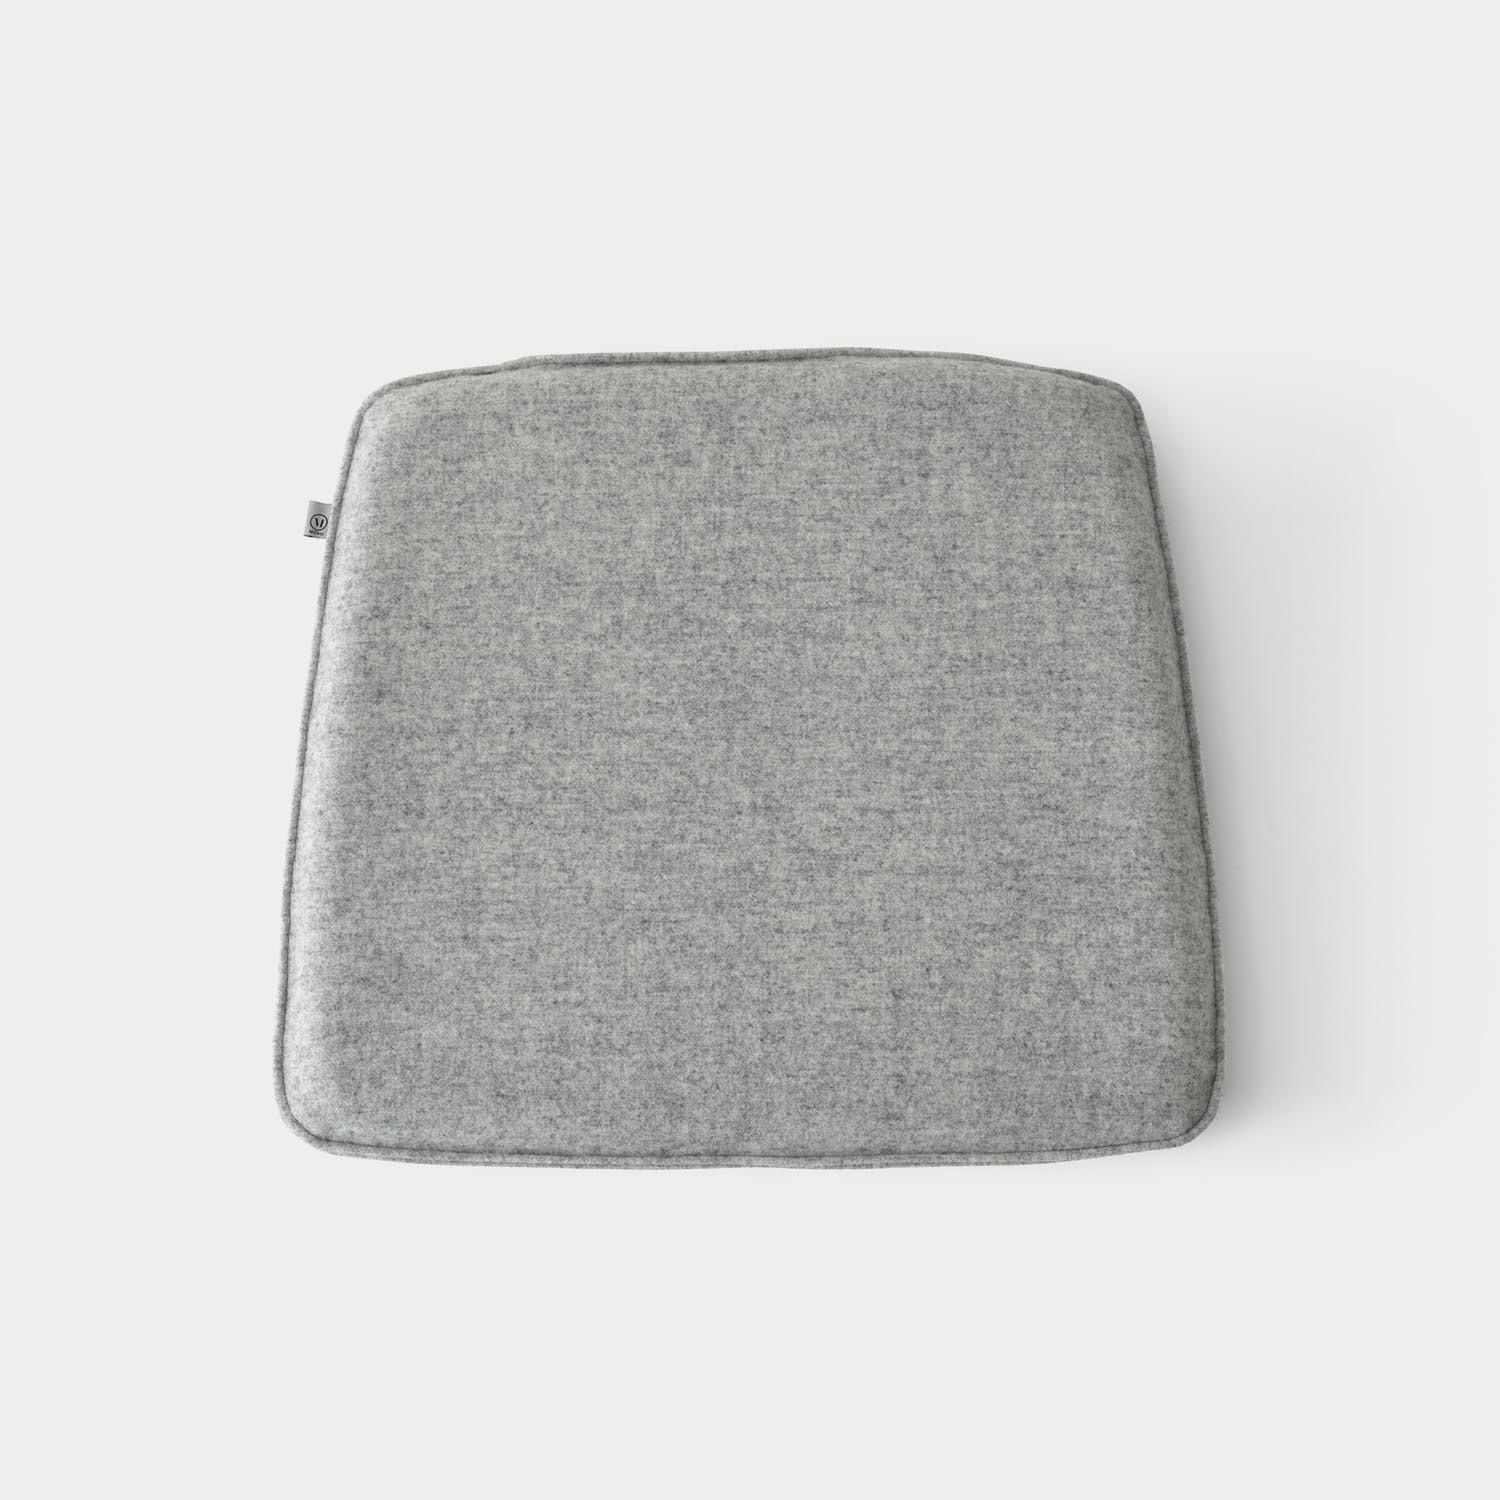 Cushion for String Lounge Chair, Indoor use, Light Gray